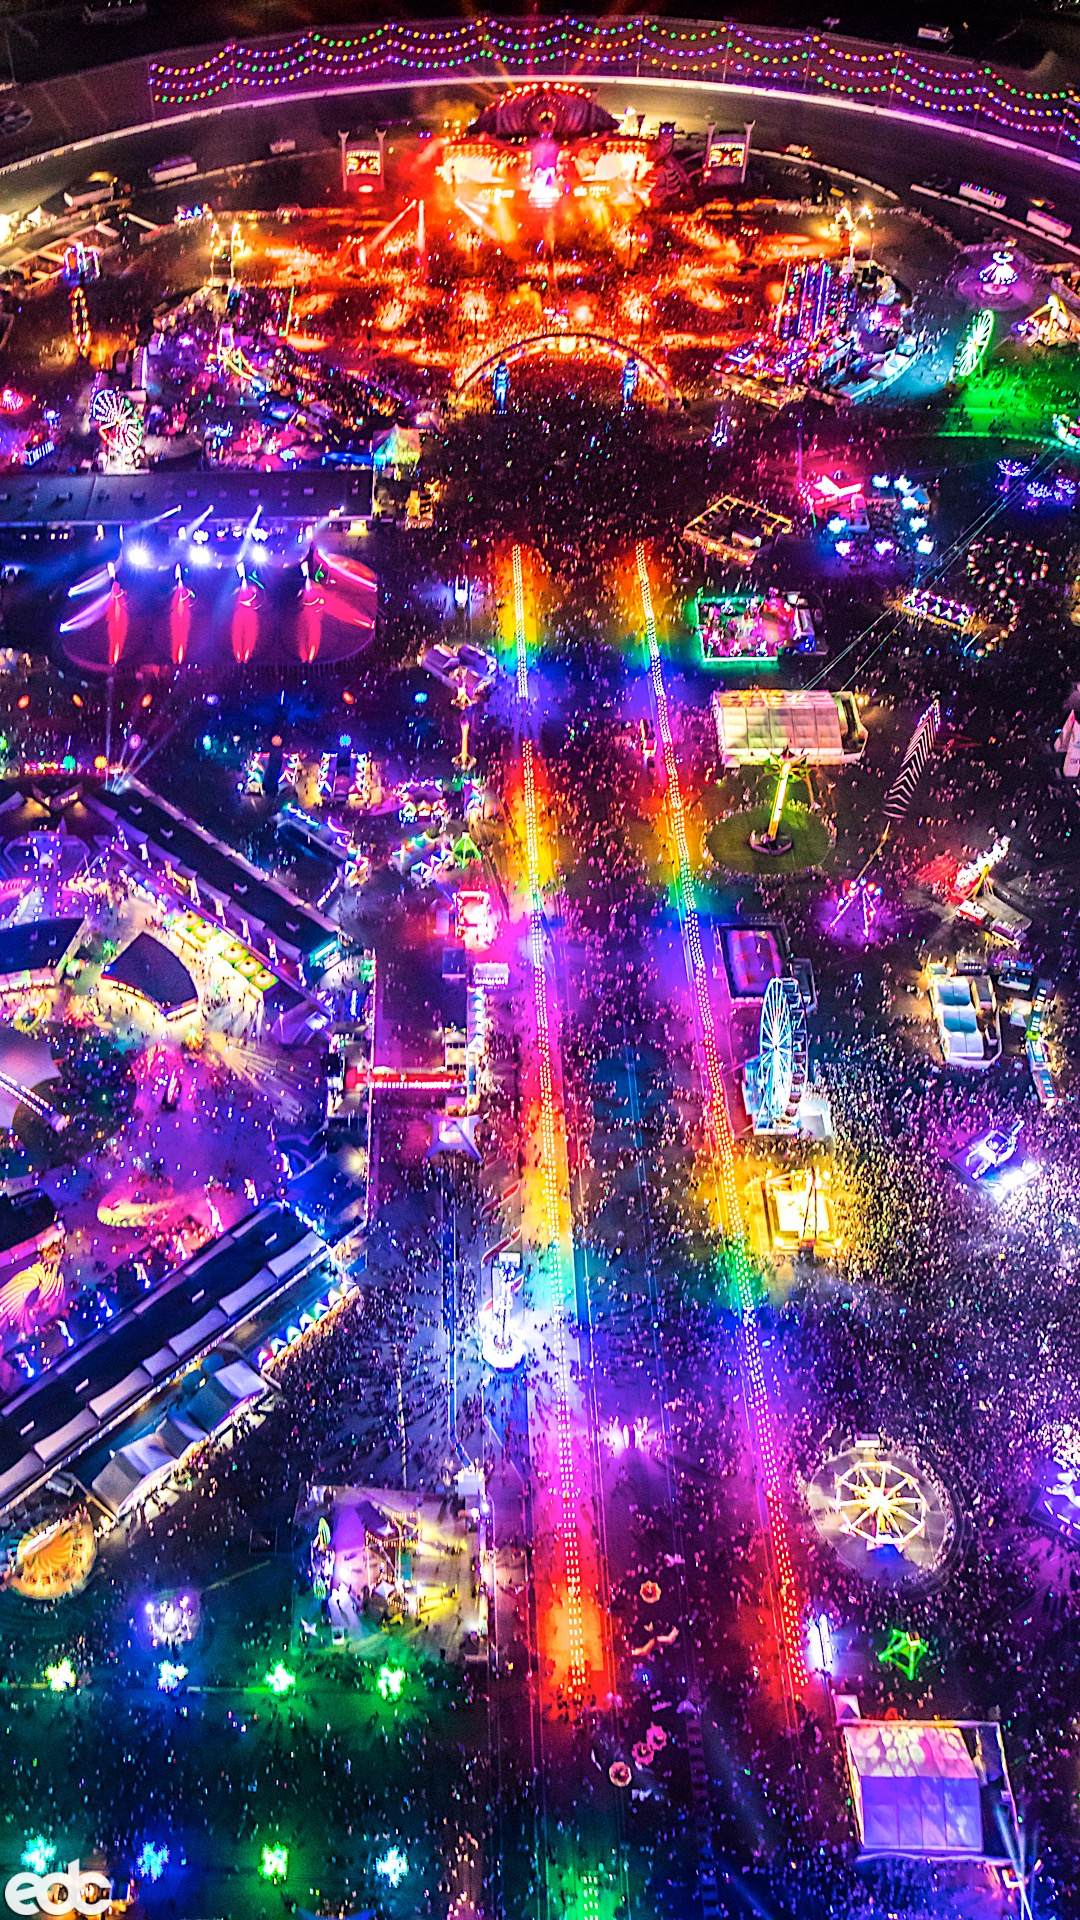 Download These Epic Edc Las Vegas Wallpapers For Your Phone Insomniac